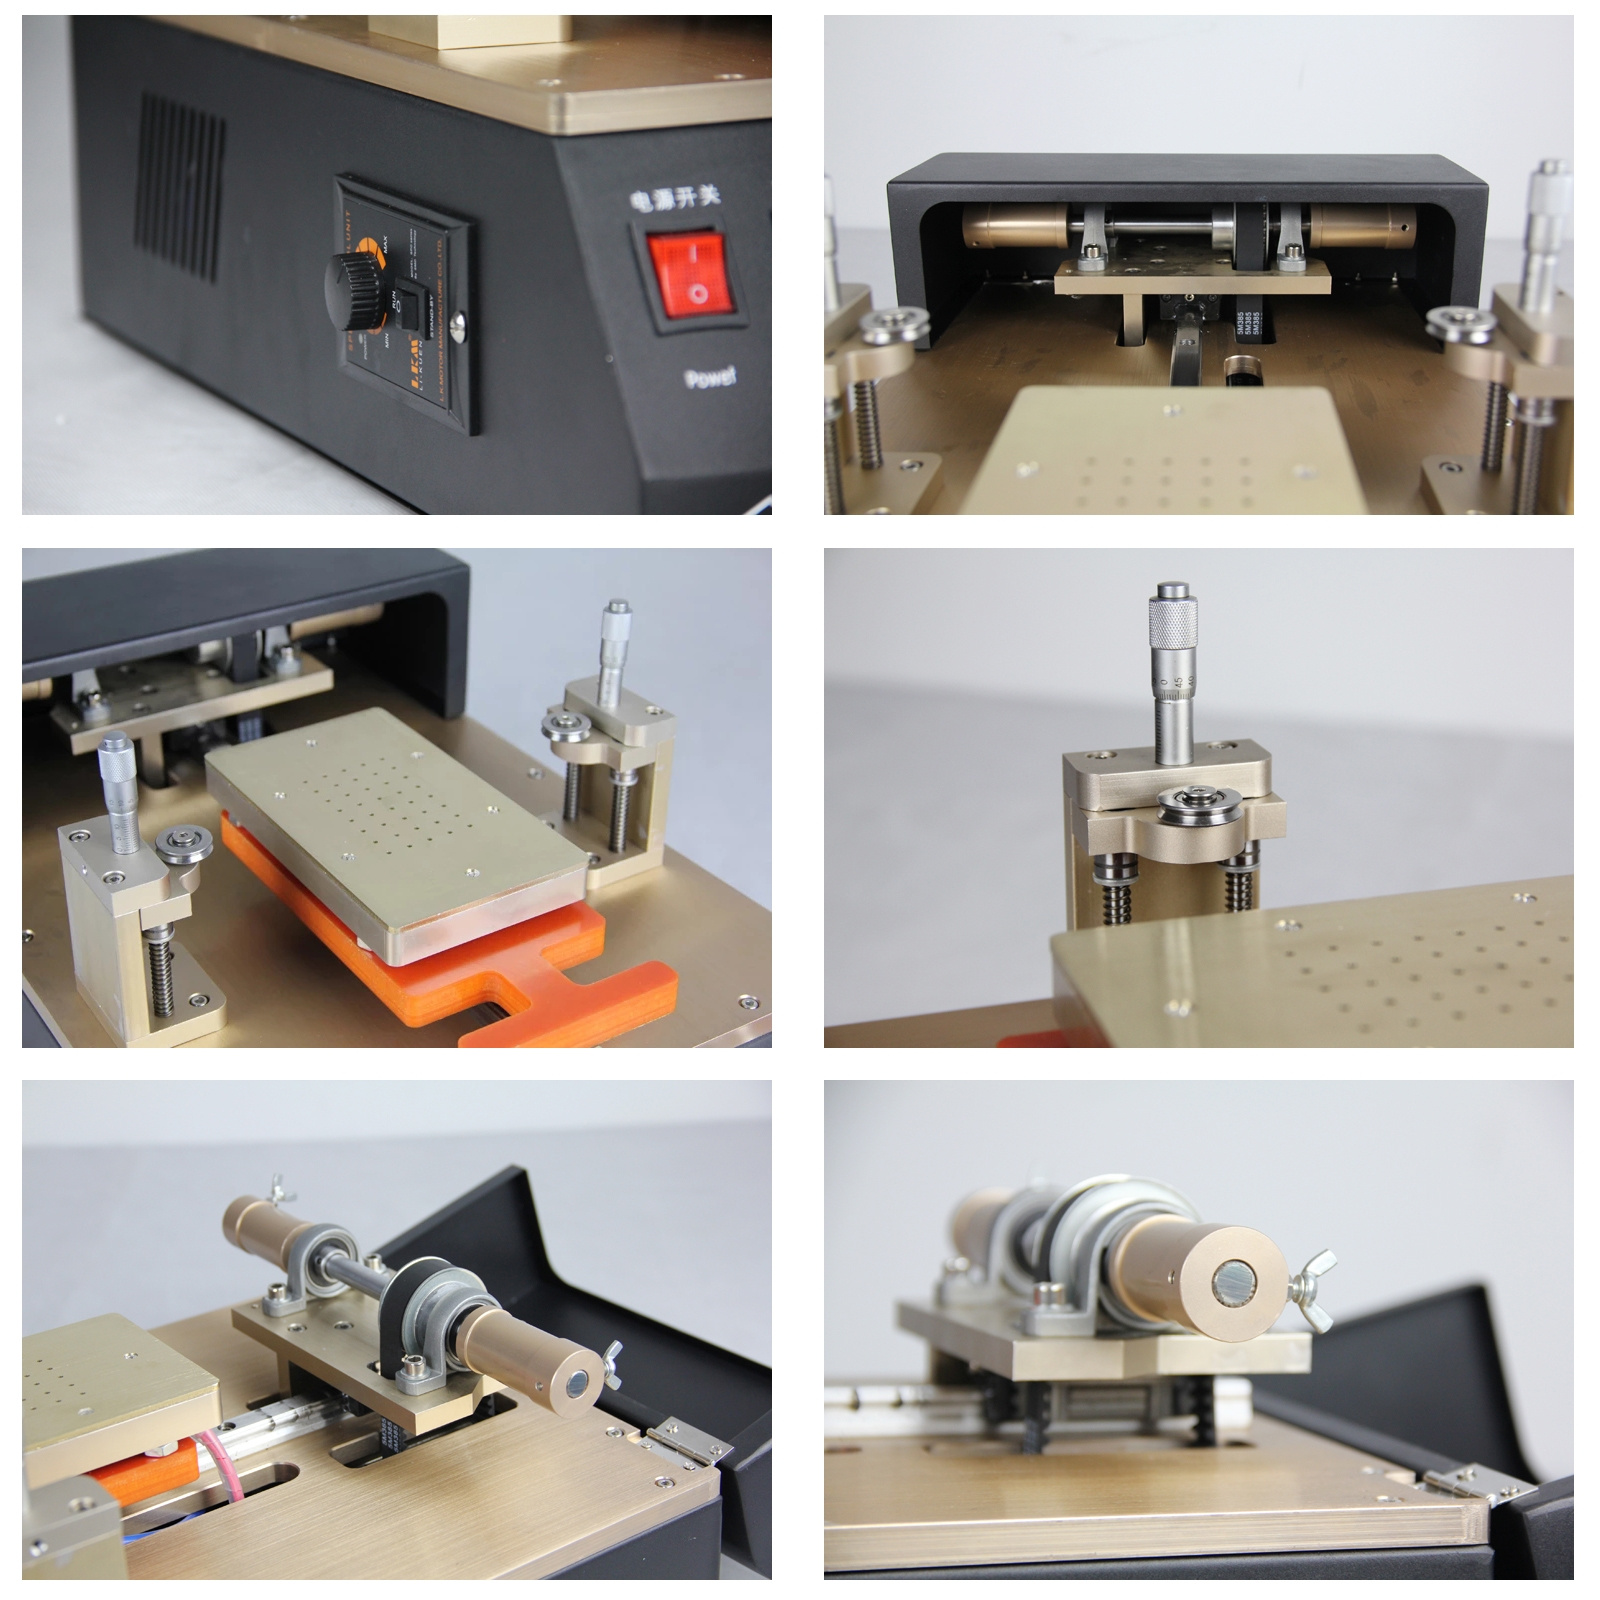 TBK958 Aluminum Alloy LCD Screen Automatic Separation Machine Built-in Temperature Control Chip For 7 inch Mobile Phone